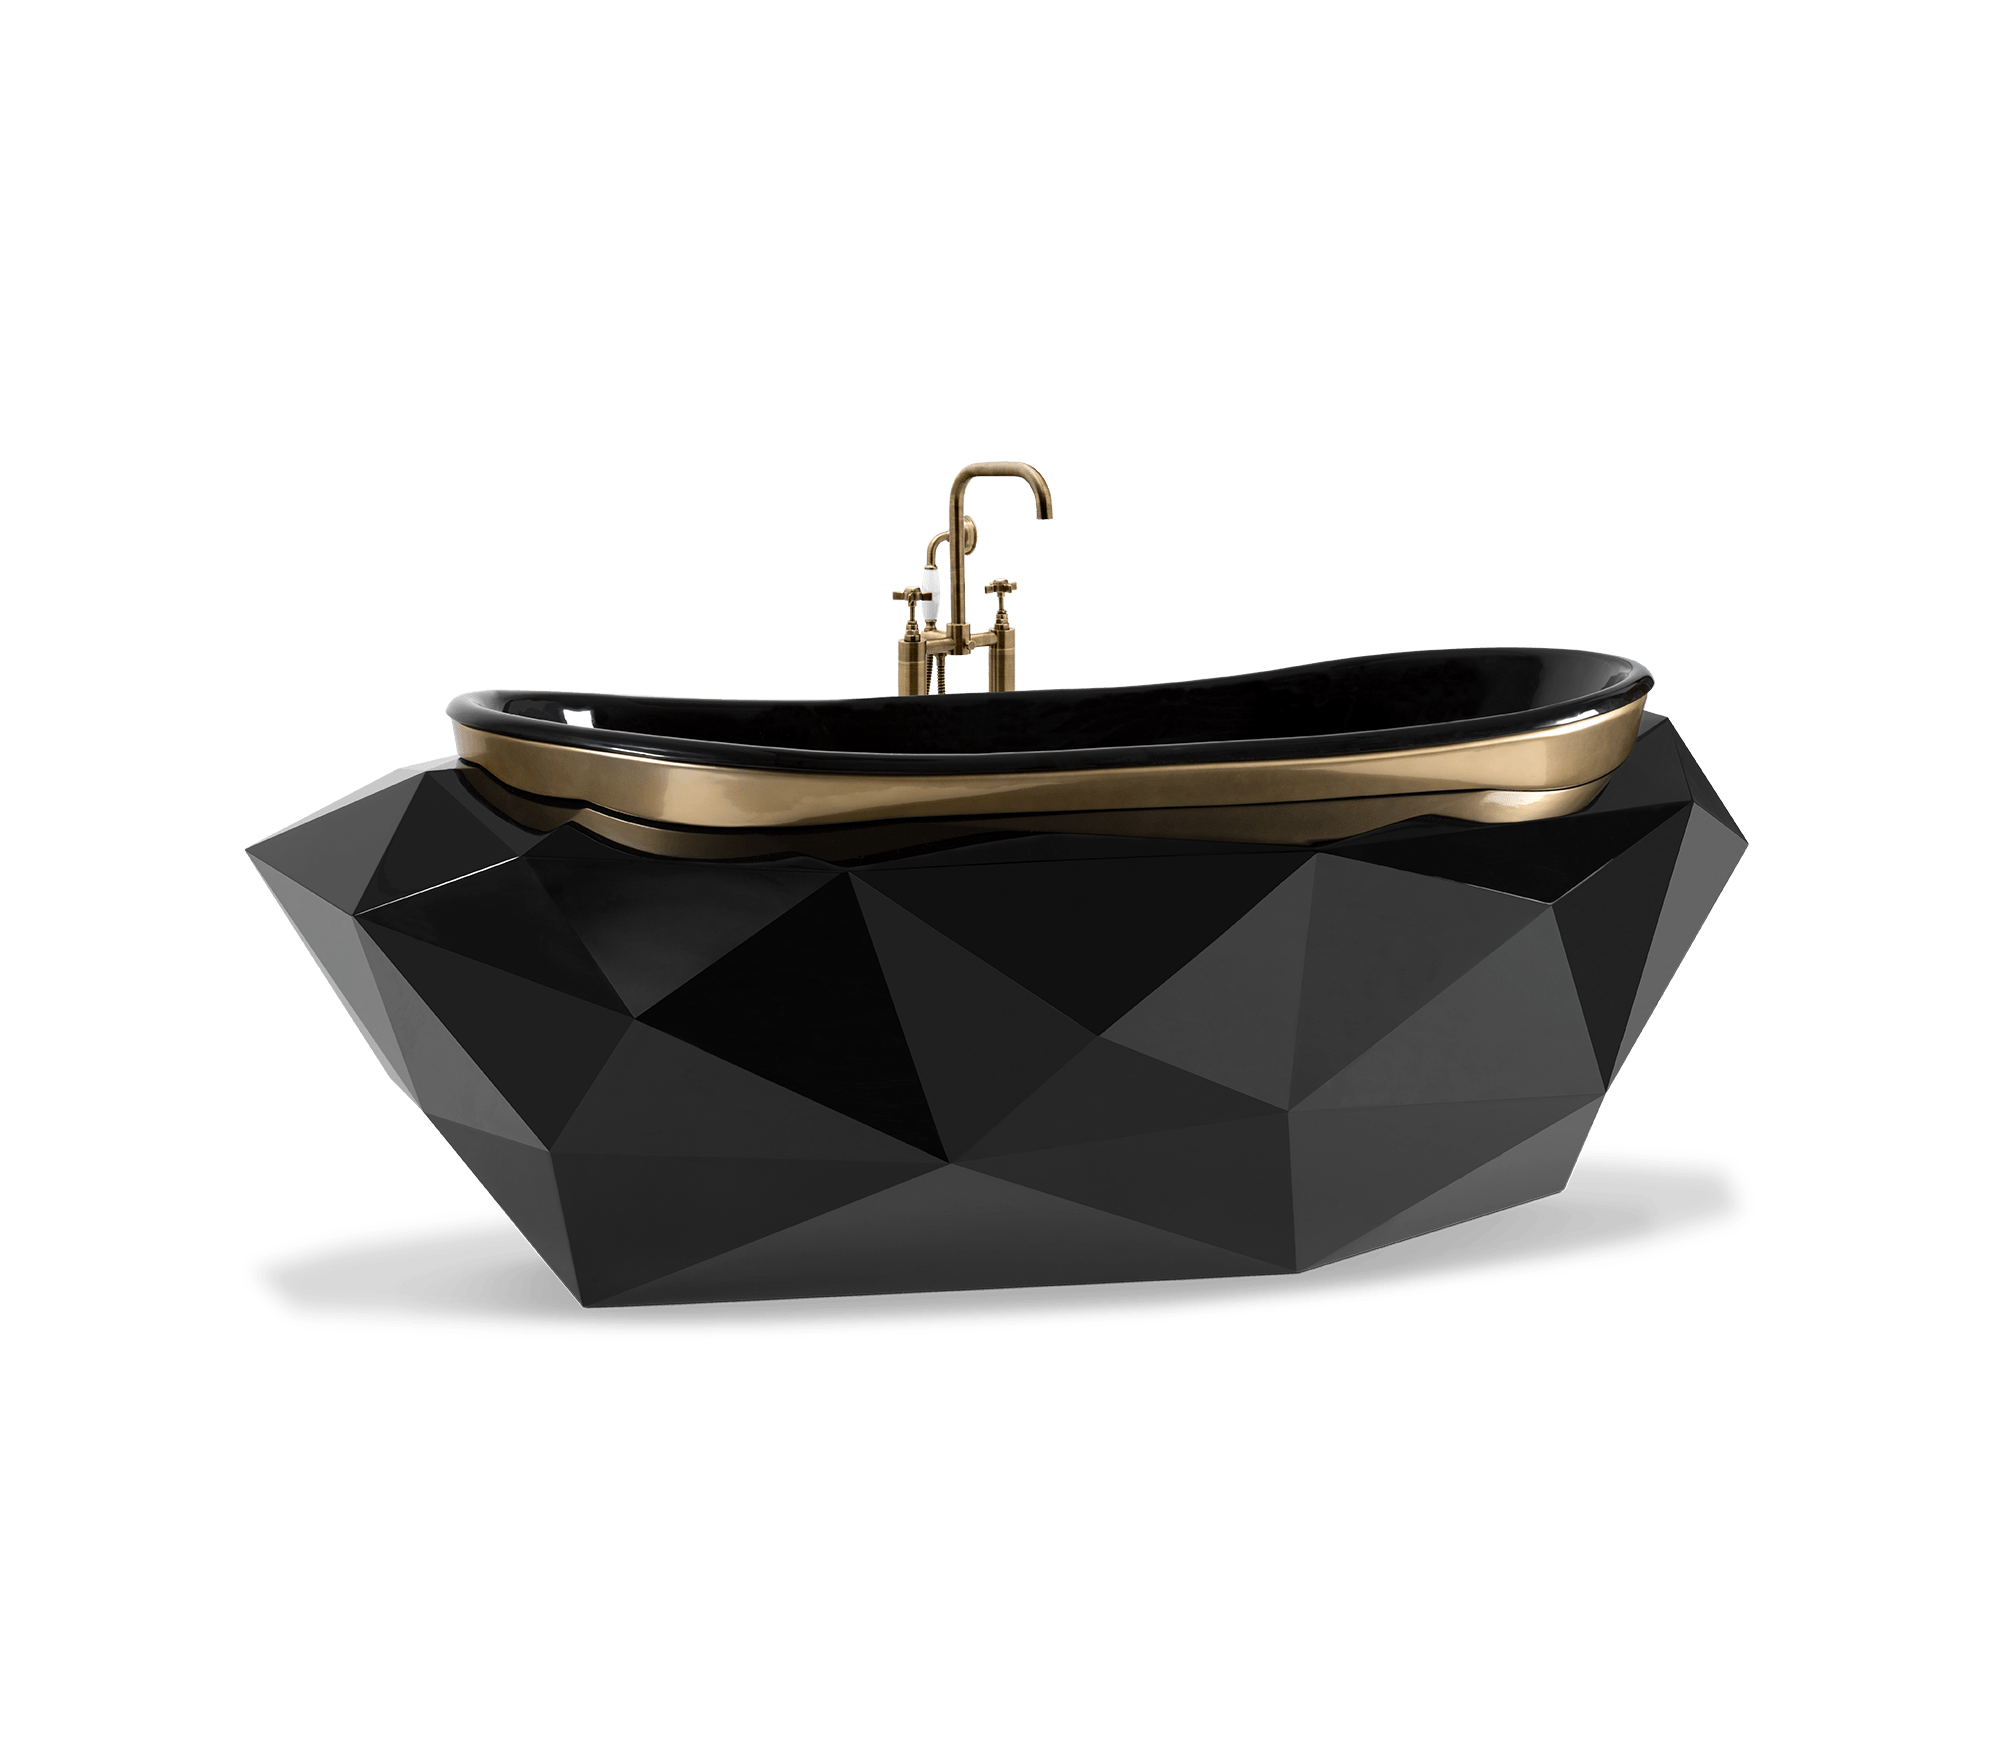 Diamond Bathtub by Boca do Lobo